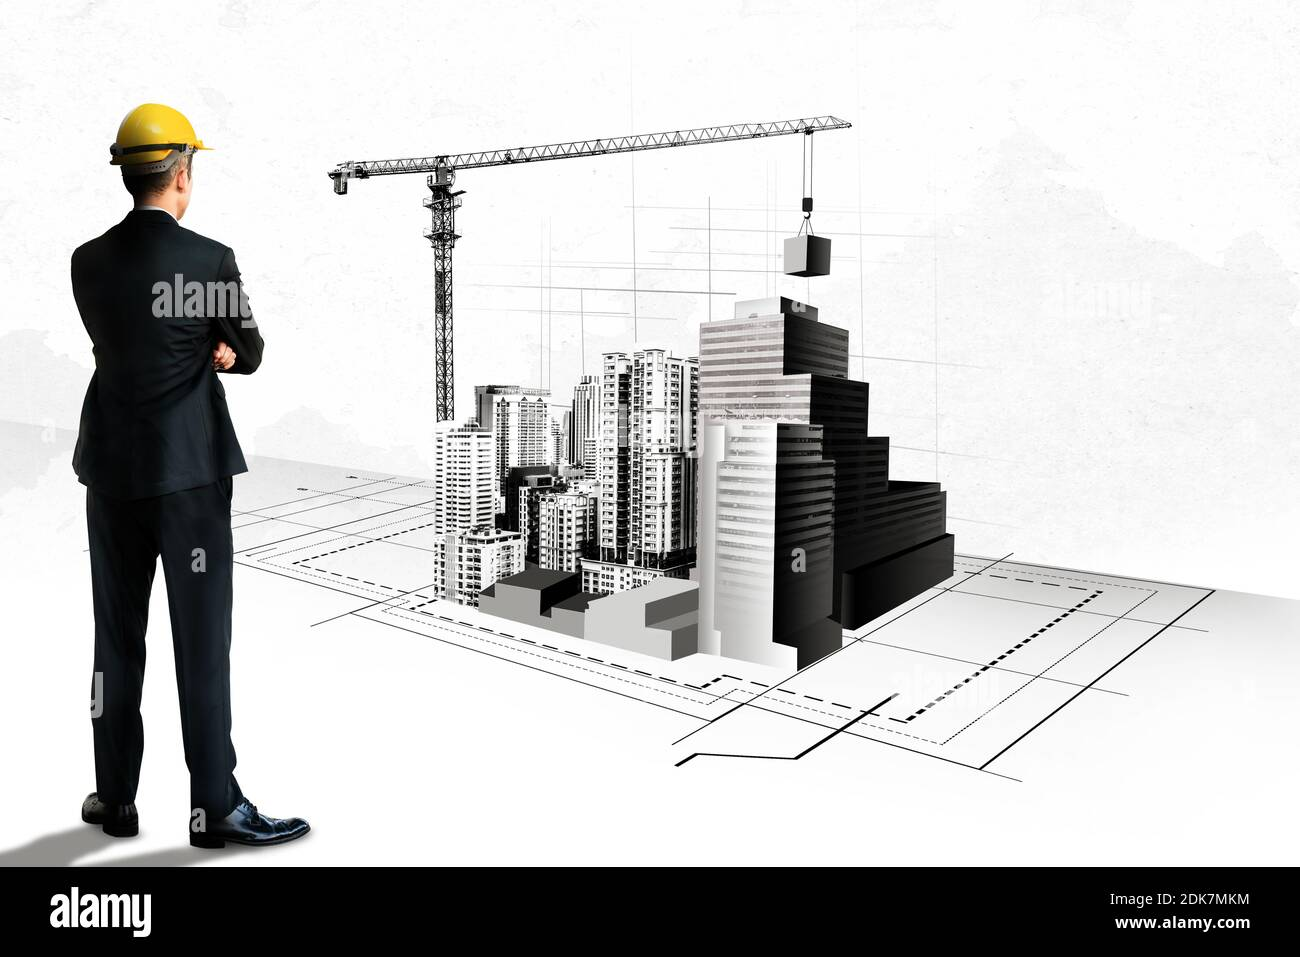 City civil planning and real estate development - Architect people looking at abstract city sketch drawing to design creative future city building Stock Photo